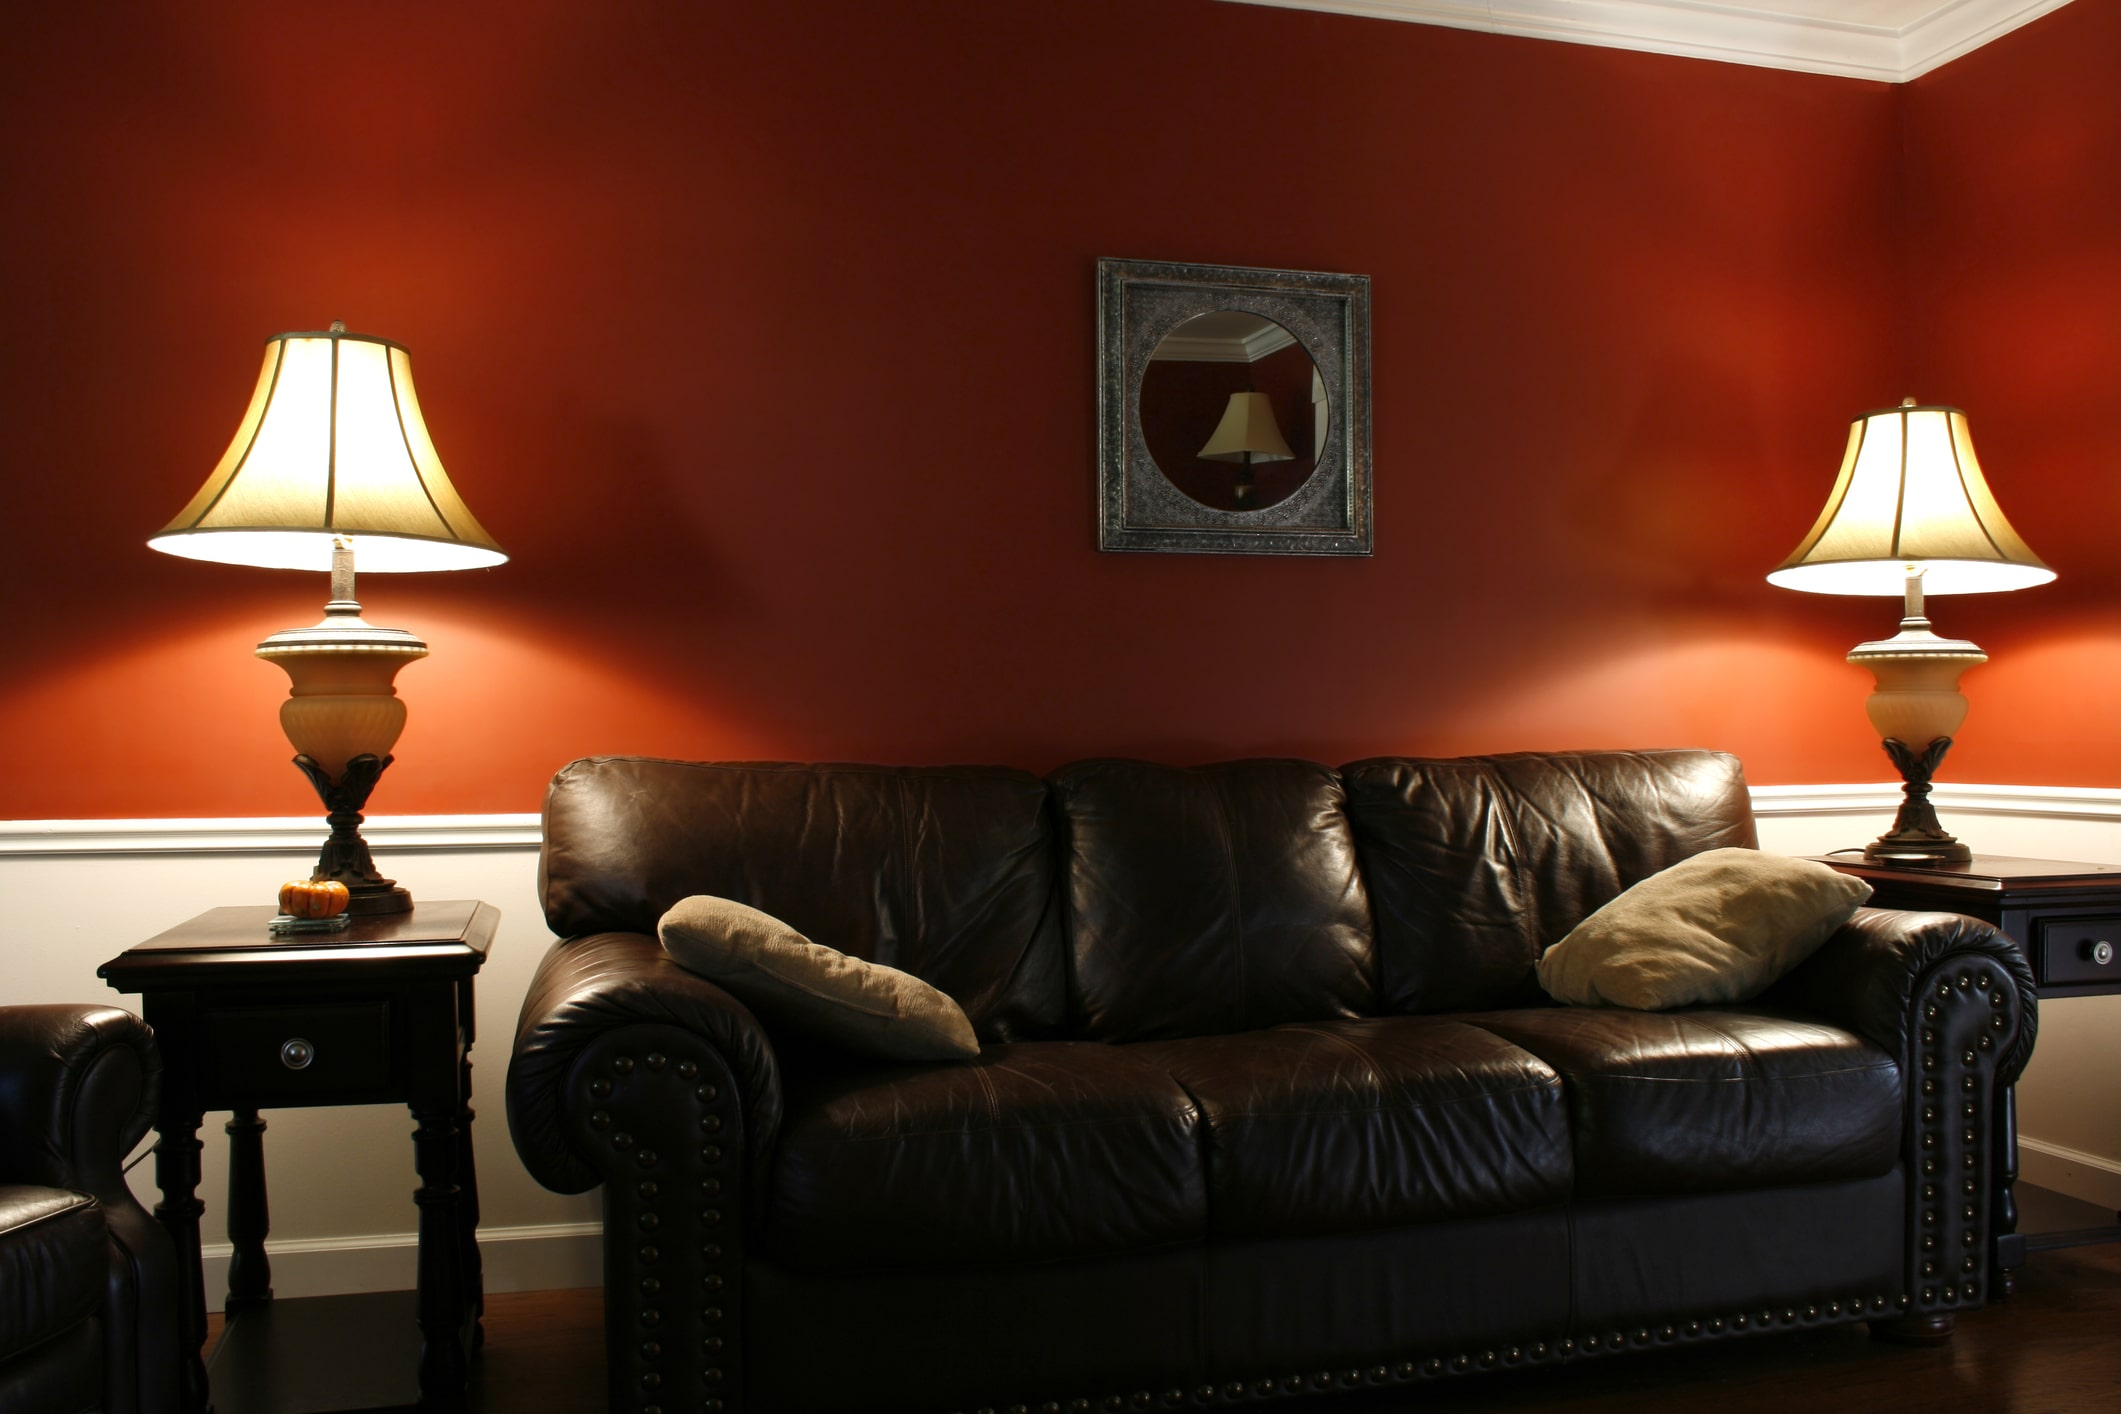 furniture-specials-couch-lamps-min